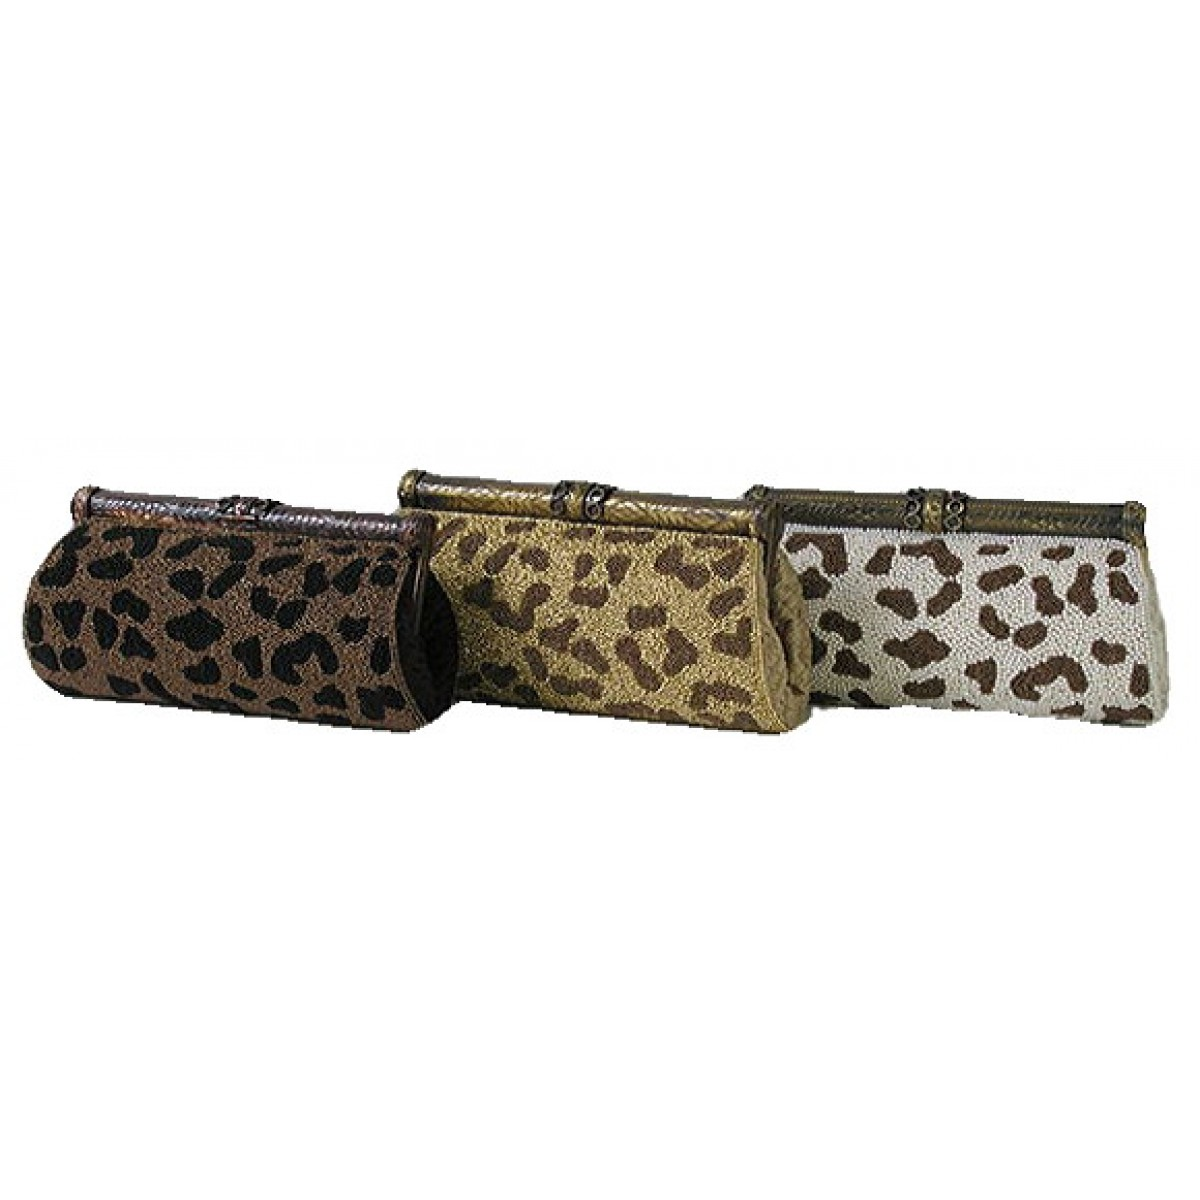 Antique Clutch Frame Bag with Leopard Print